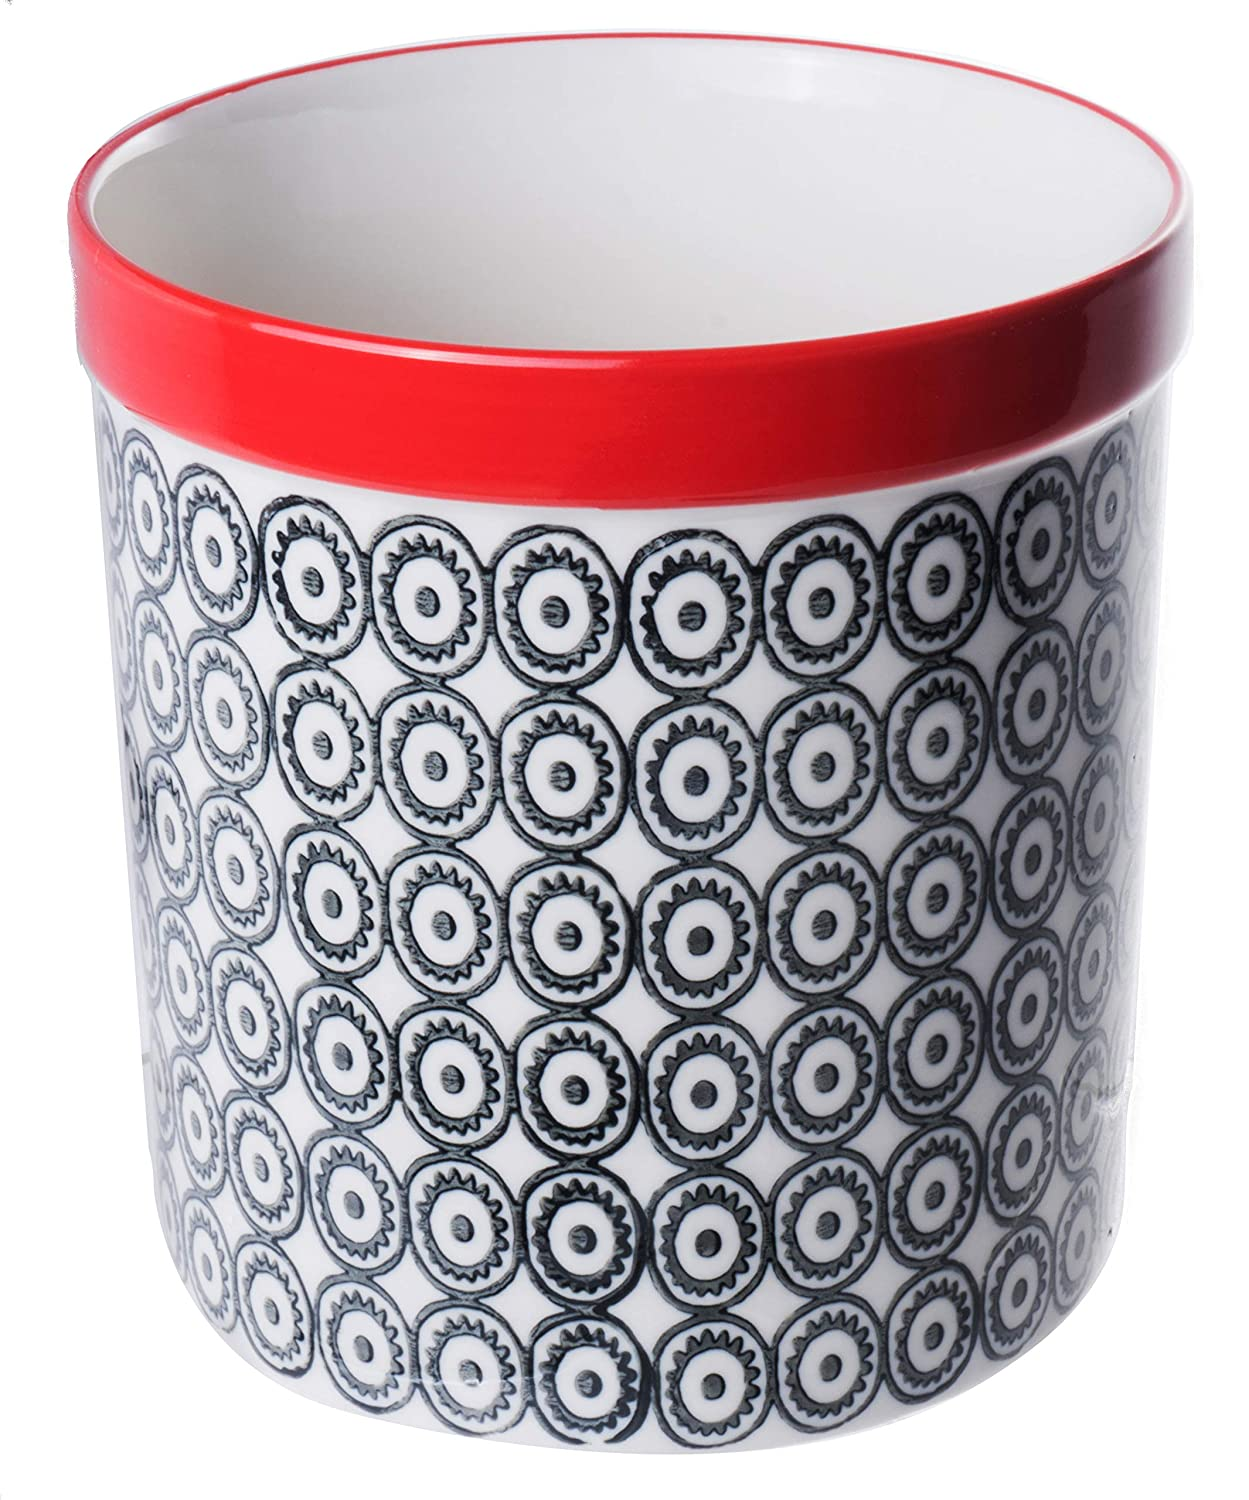 Large Durable Stoneware Utensil Holder Kitchen Tools Organizer with Hand-Stamped Black Pattern and Red Rim